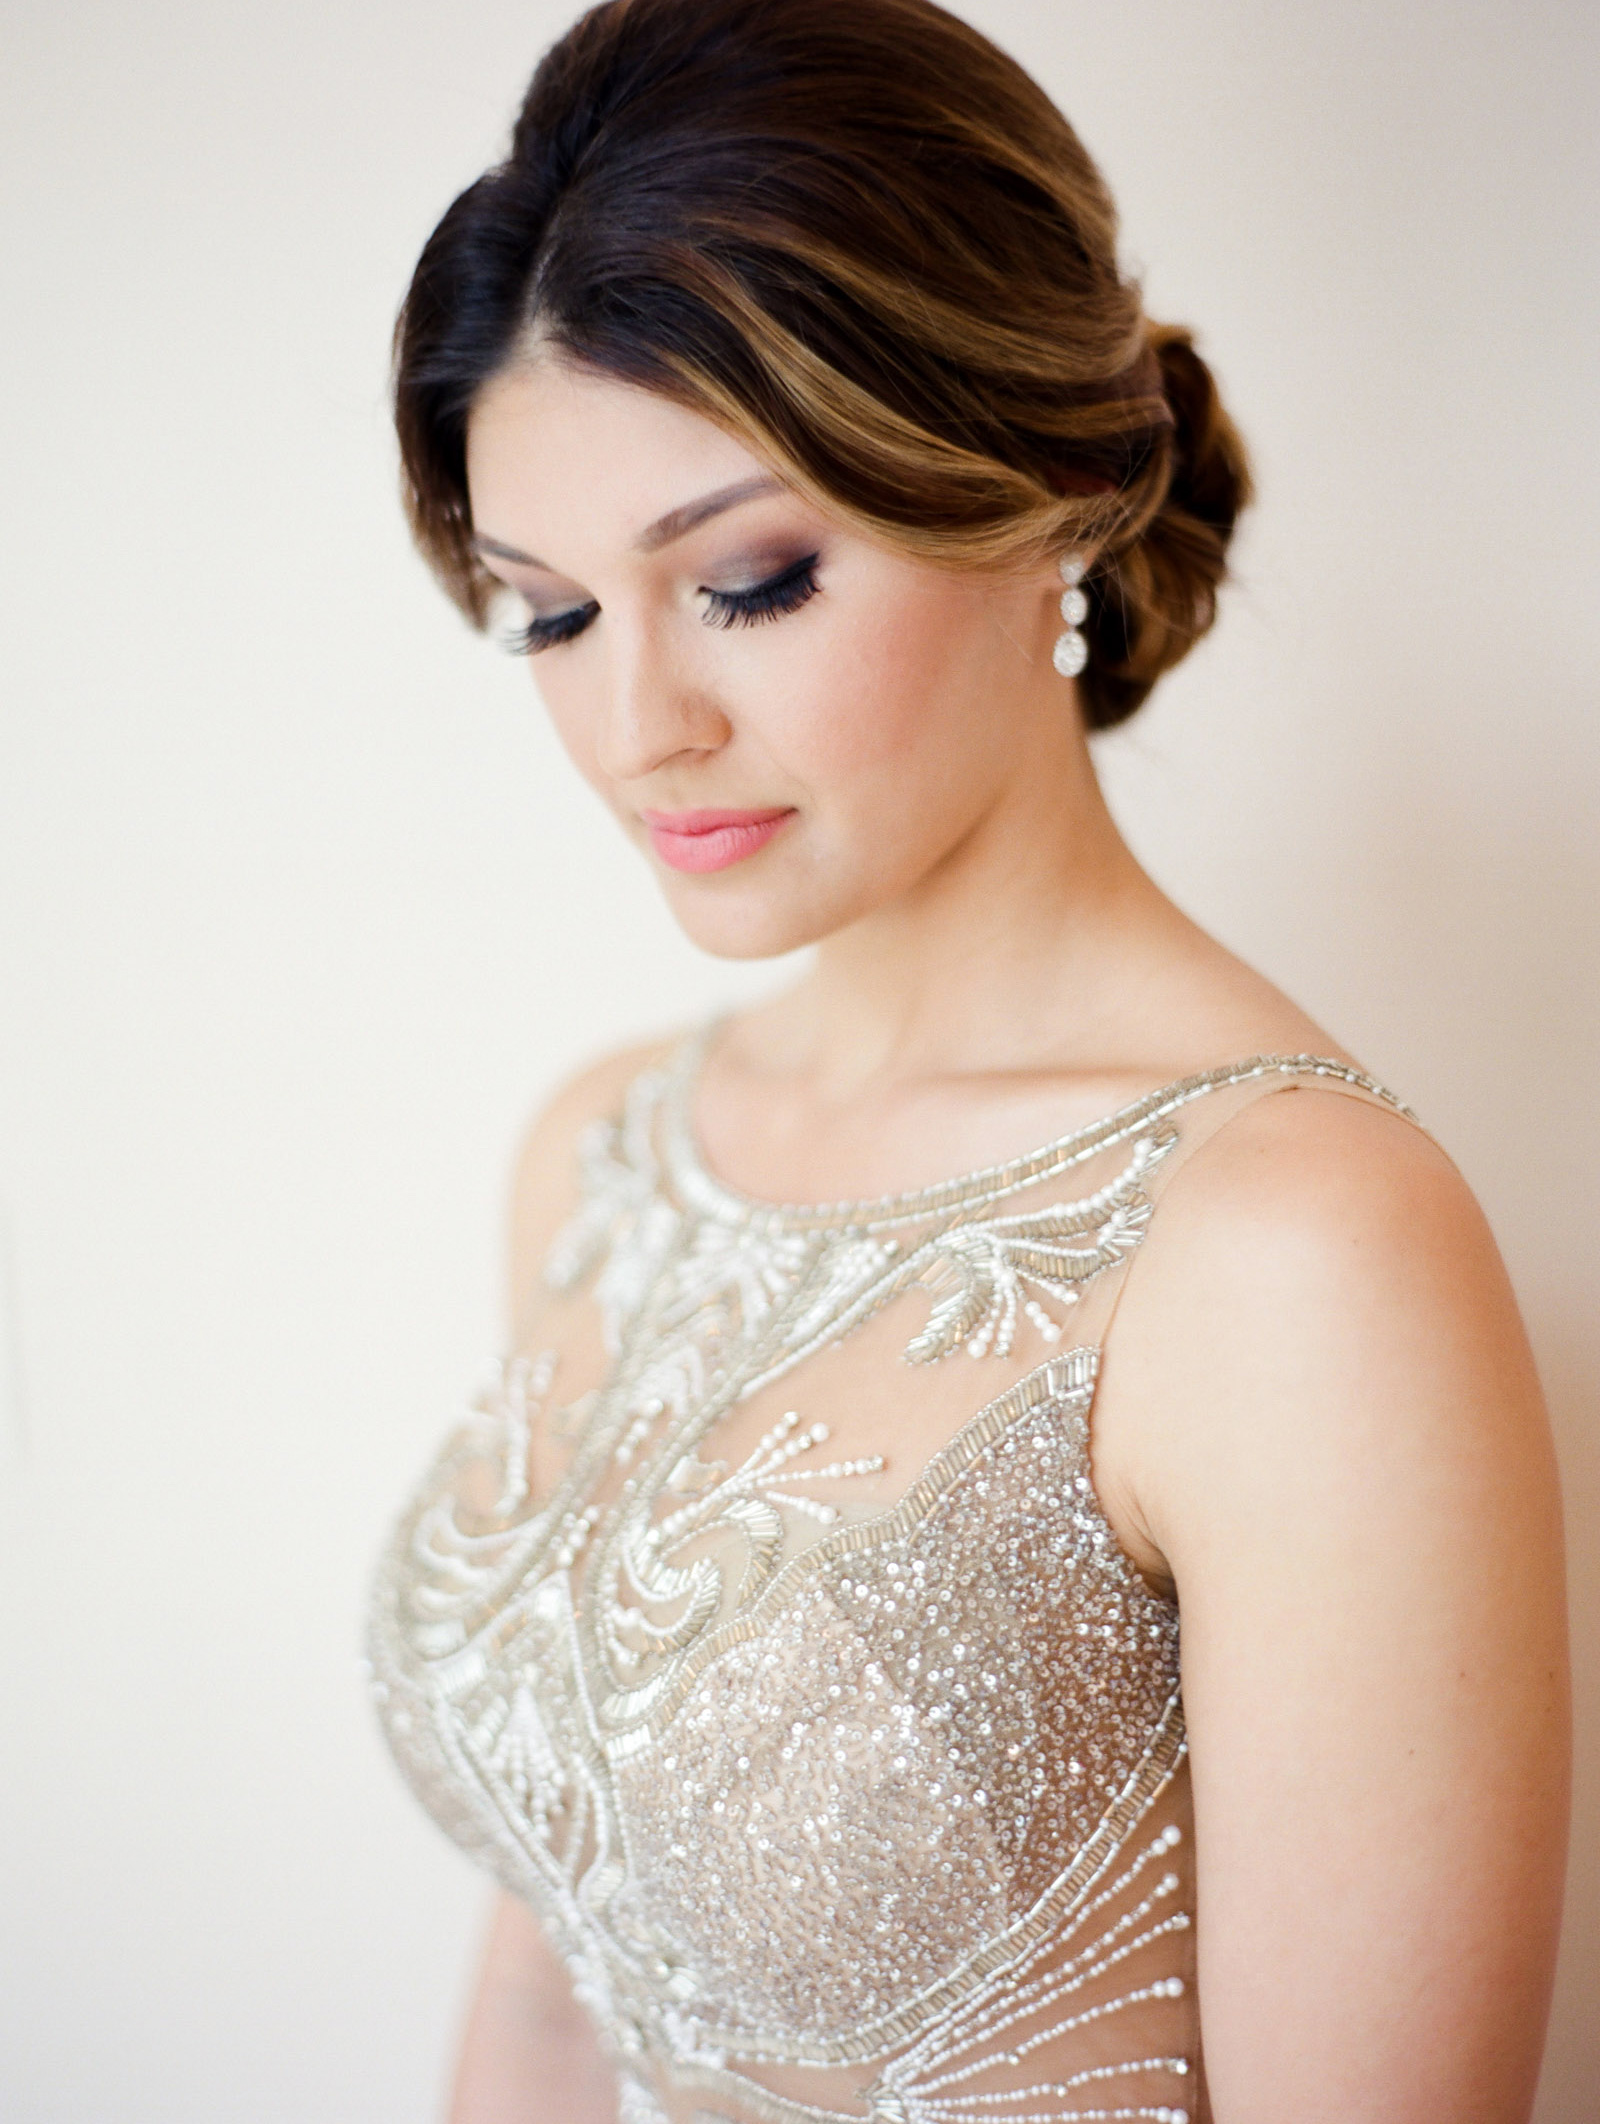 0065_0055_Houston-Chateau-Cocomar-Bridal-Photographer.jpg